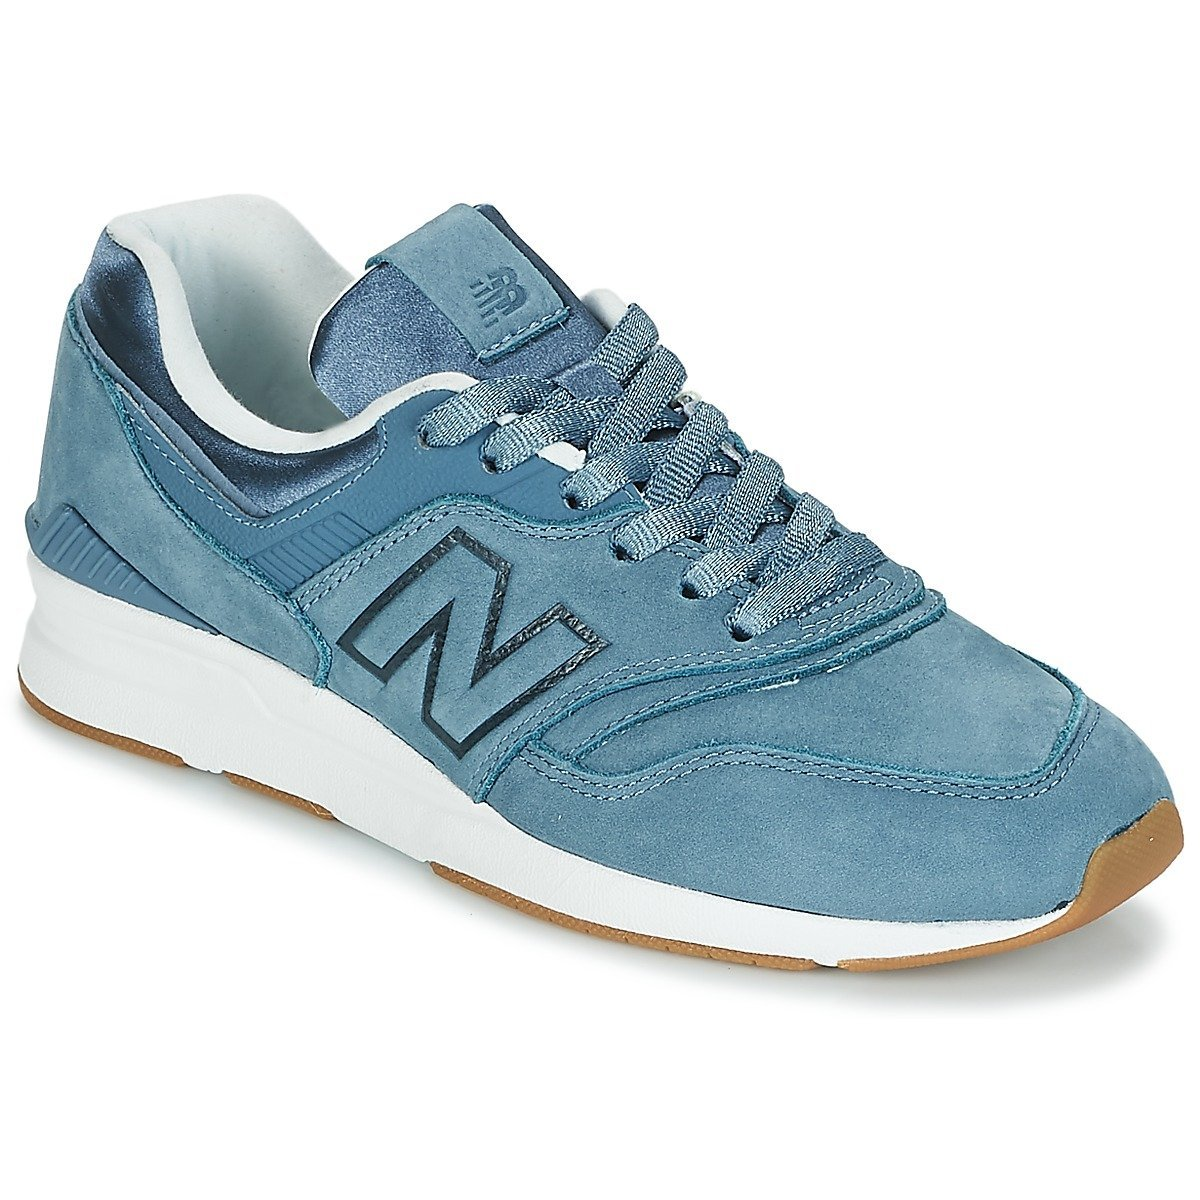 New Balance damen WL697 Patinabraun Turnschuhe Low 40